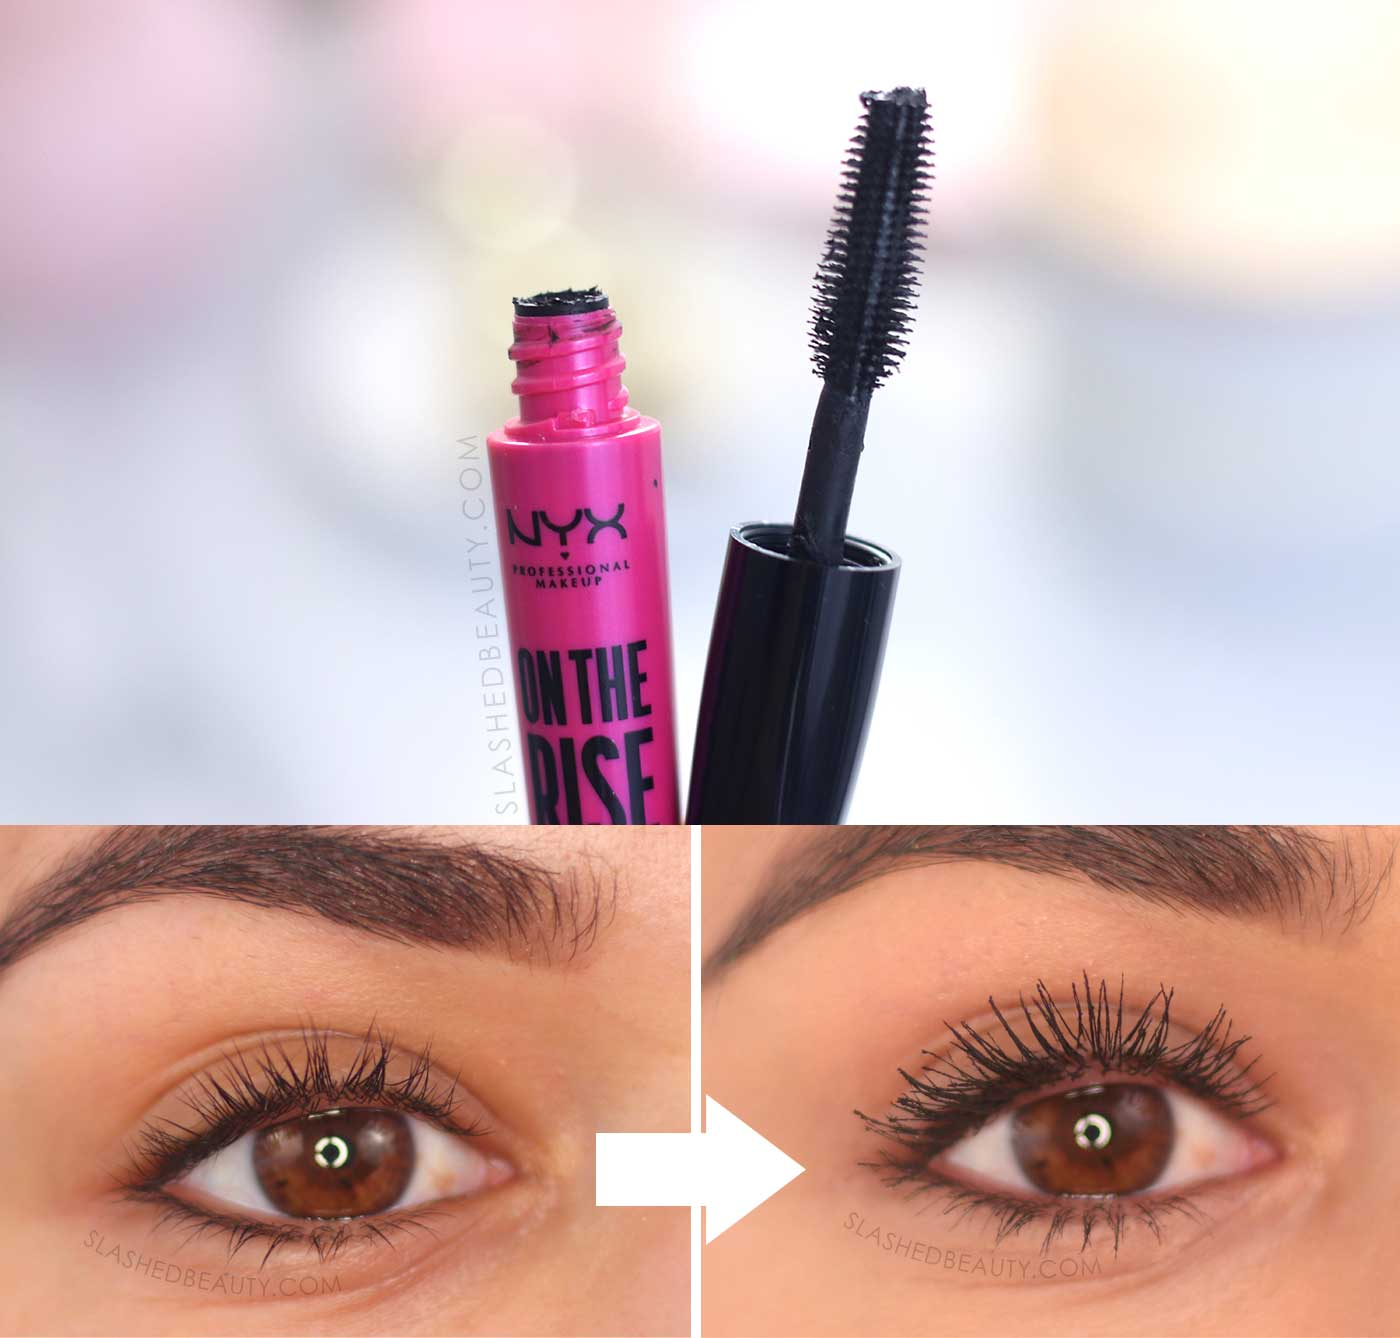 NYX On the Rise Volume Liftscara Before & After Review | 5 Best Drugstore Mascaras in 2020 | Slashed Beauty